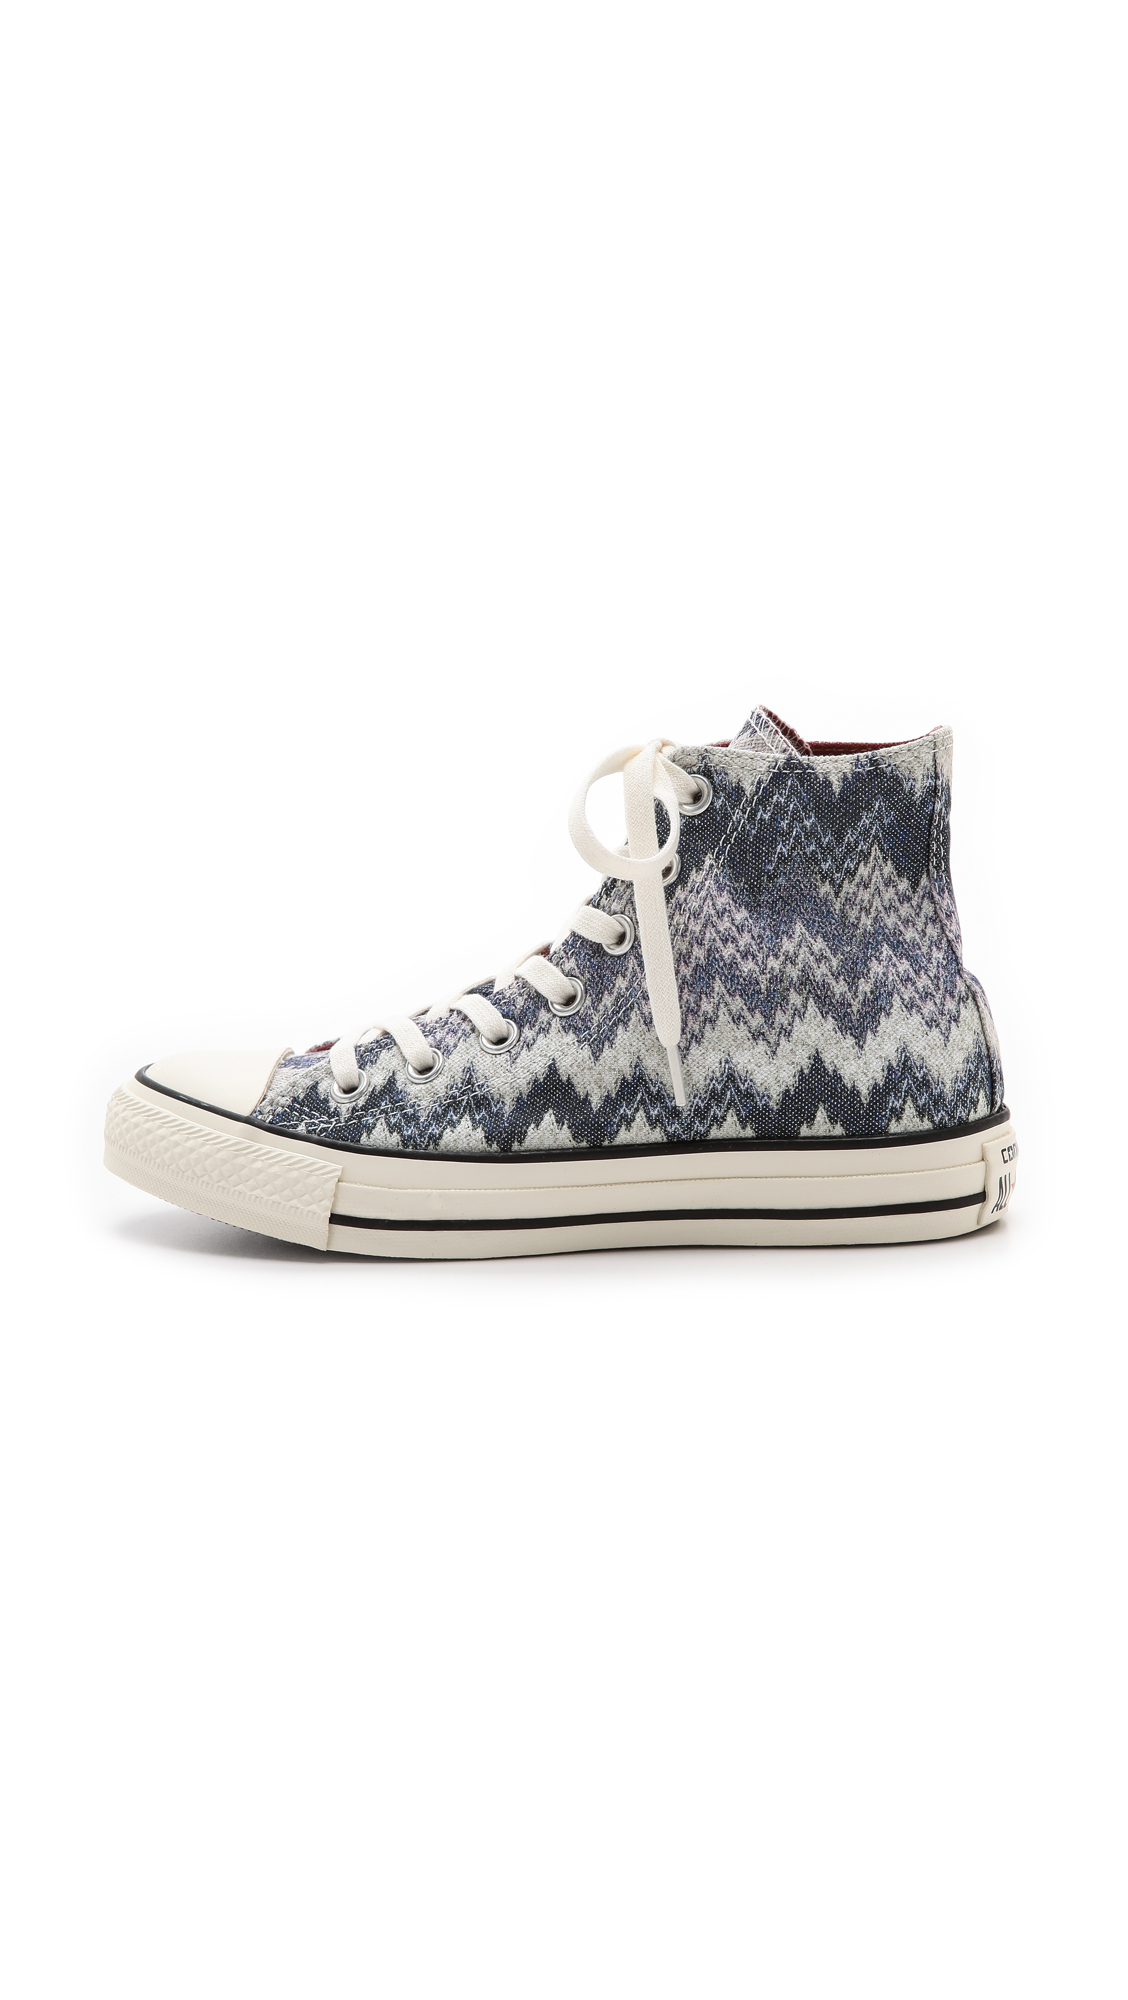 96162579049b Converse Chuck Taylor All Star Missoni High Top Sneakers - Egret ...